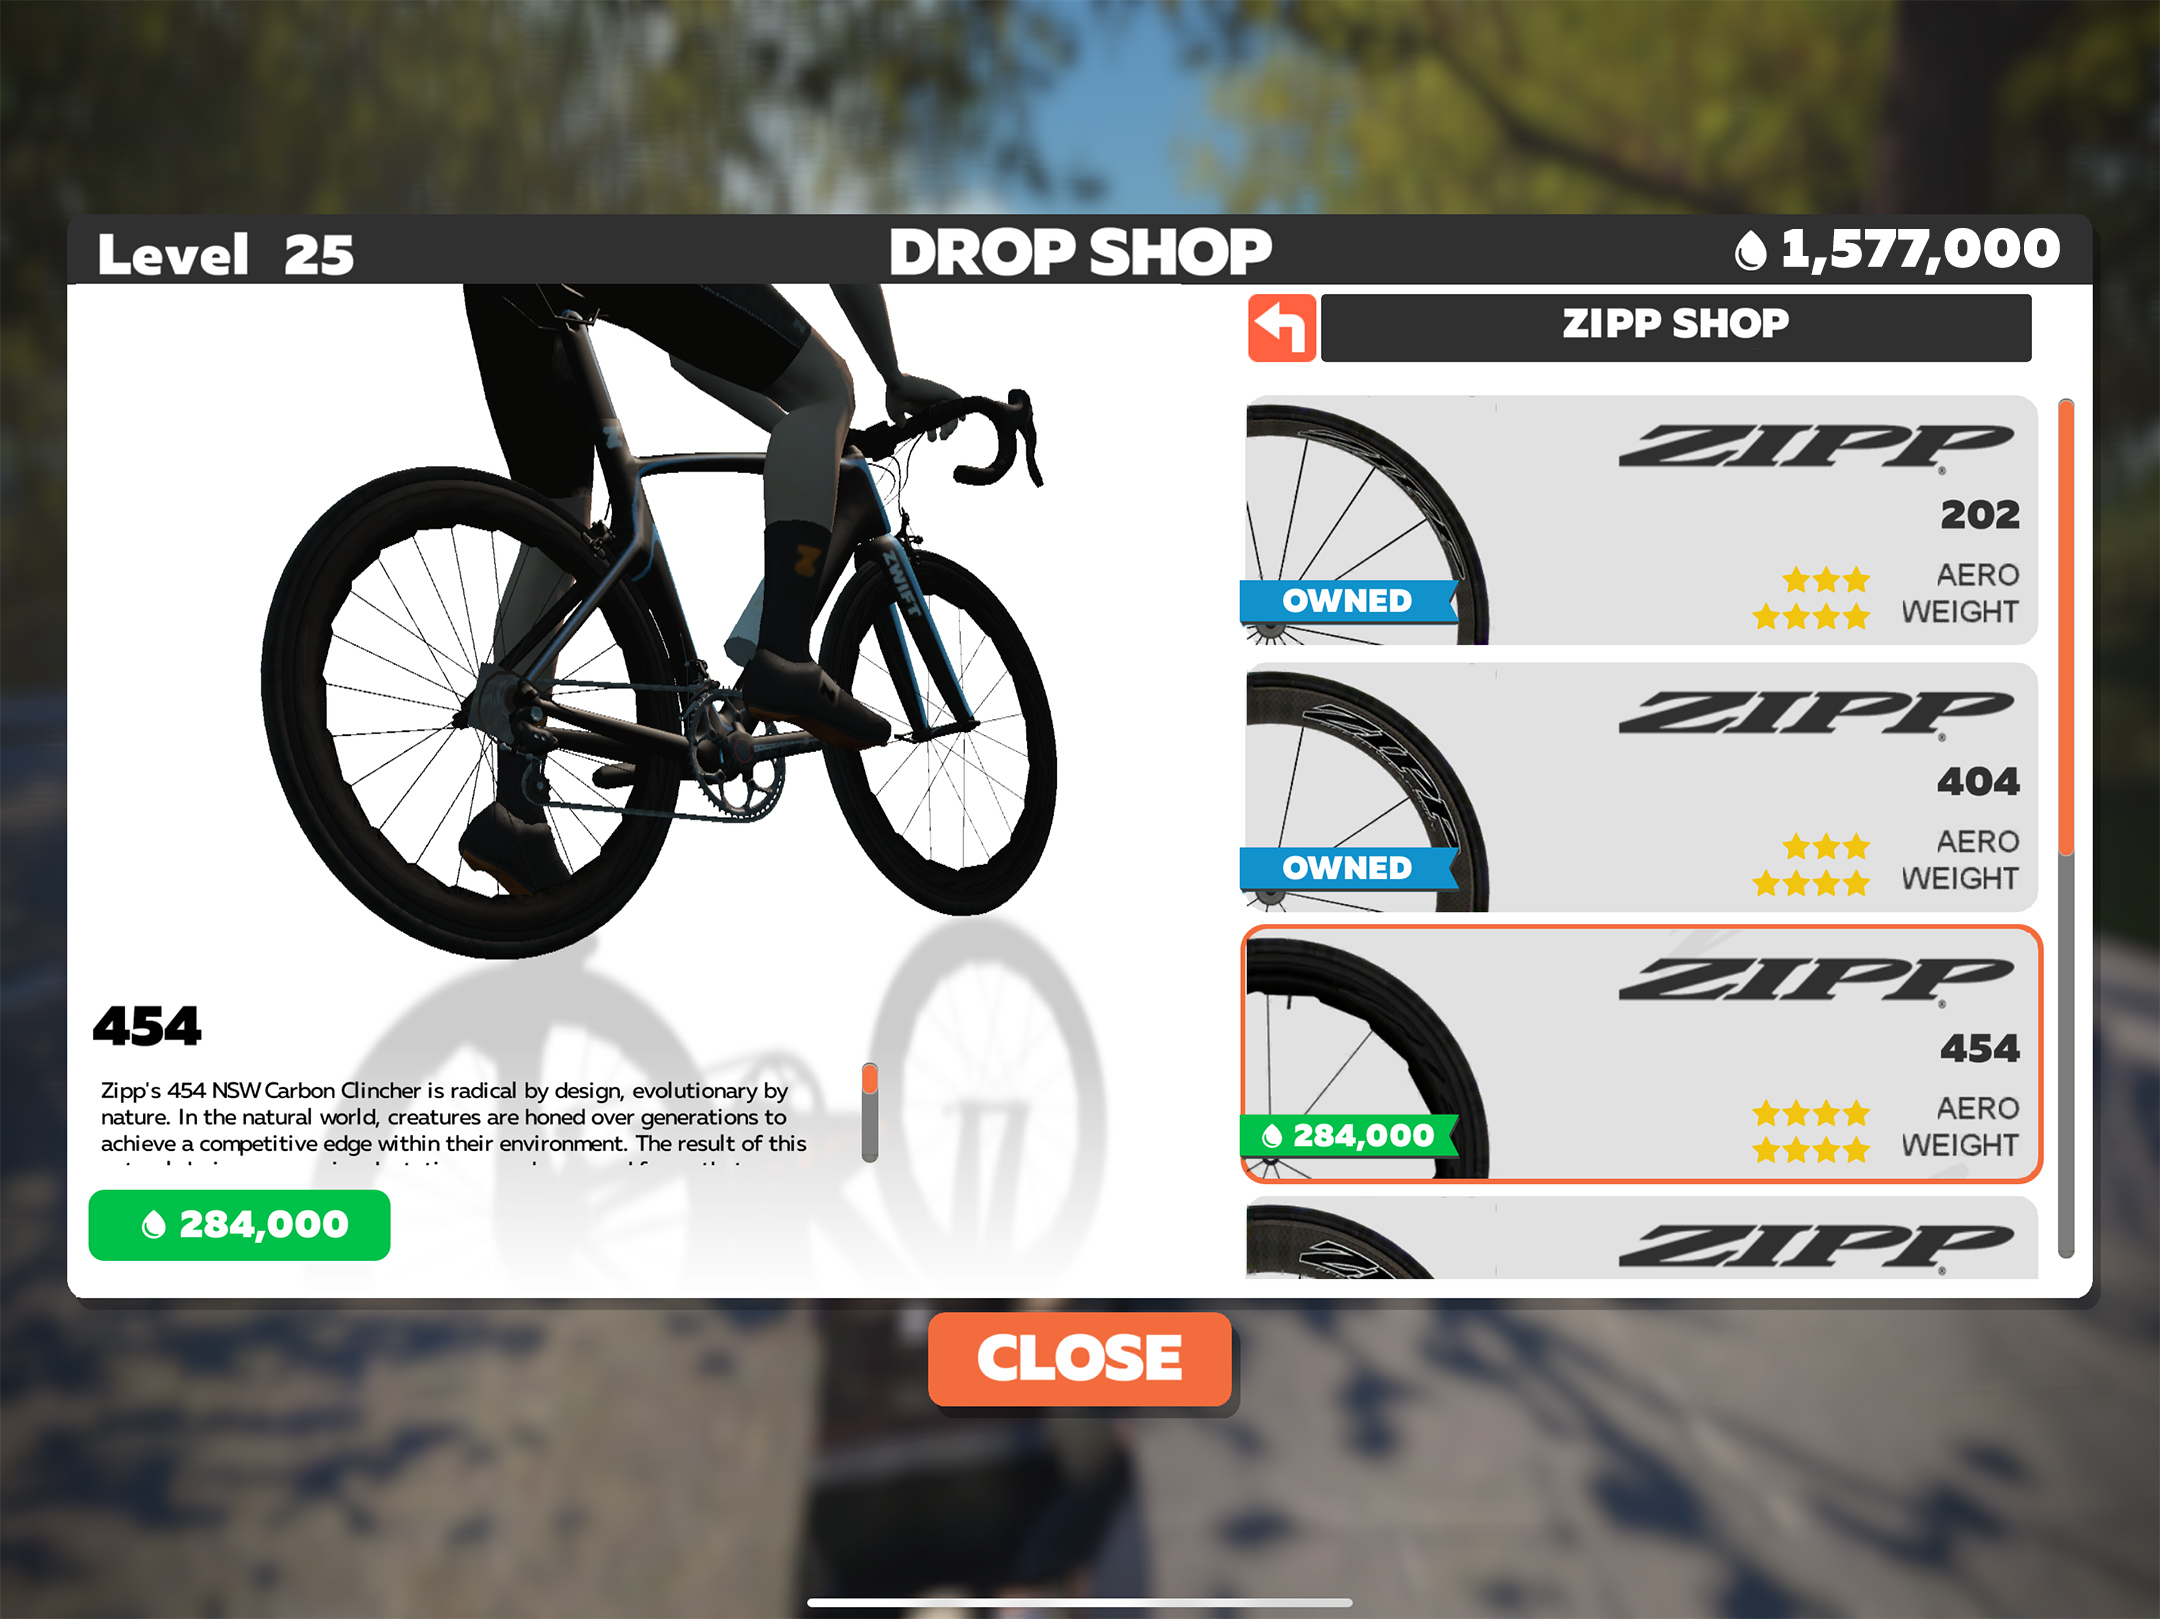 Hard Work Pays Off At The Drop Shop | Zwift